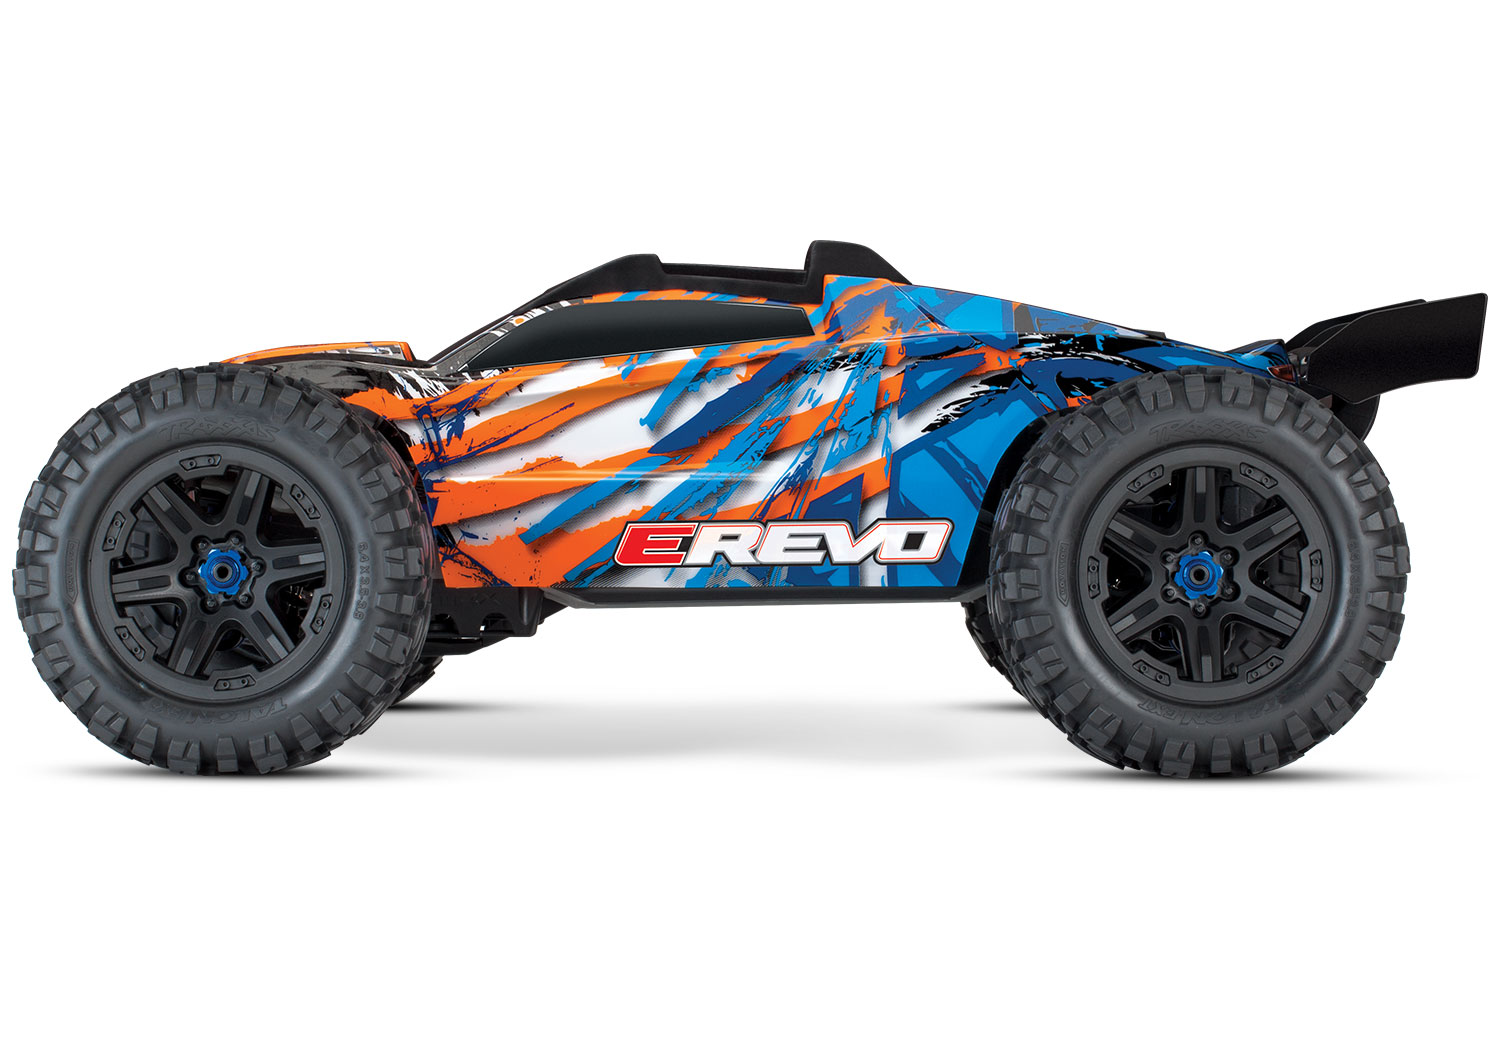 PACK TRAXXAS E-REVO - 4x4 - ORANGE - 1/10 BRUSHLESS - TSM - VERSION 4S/CHARGEUR